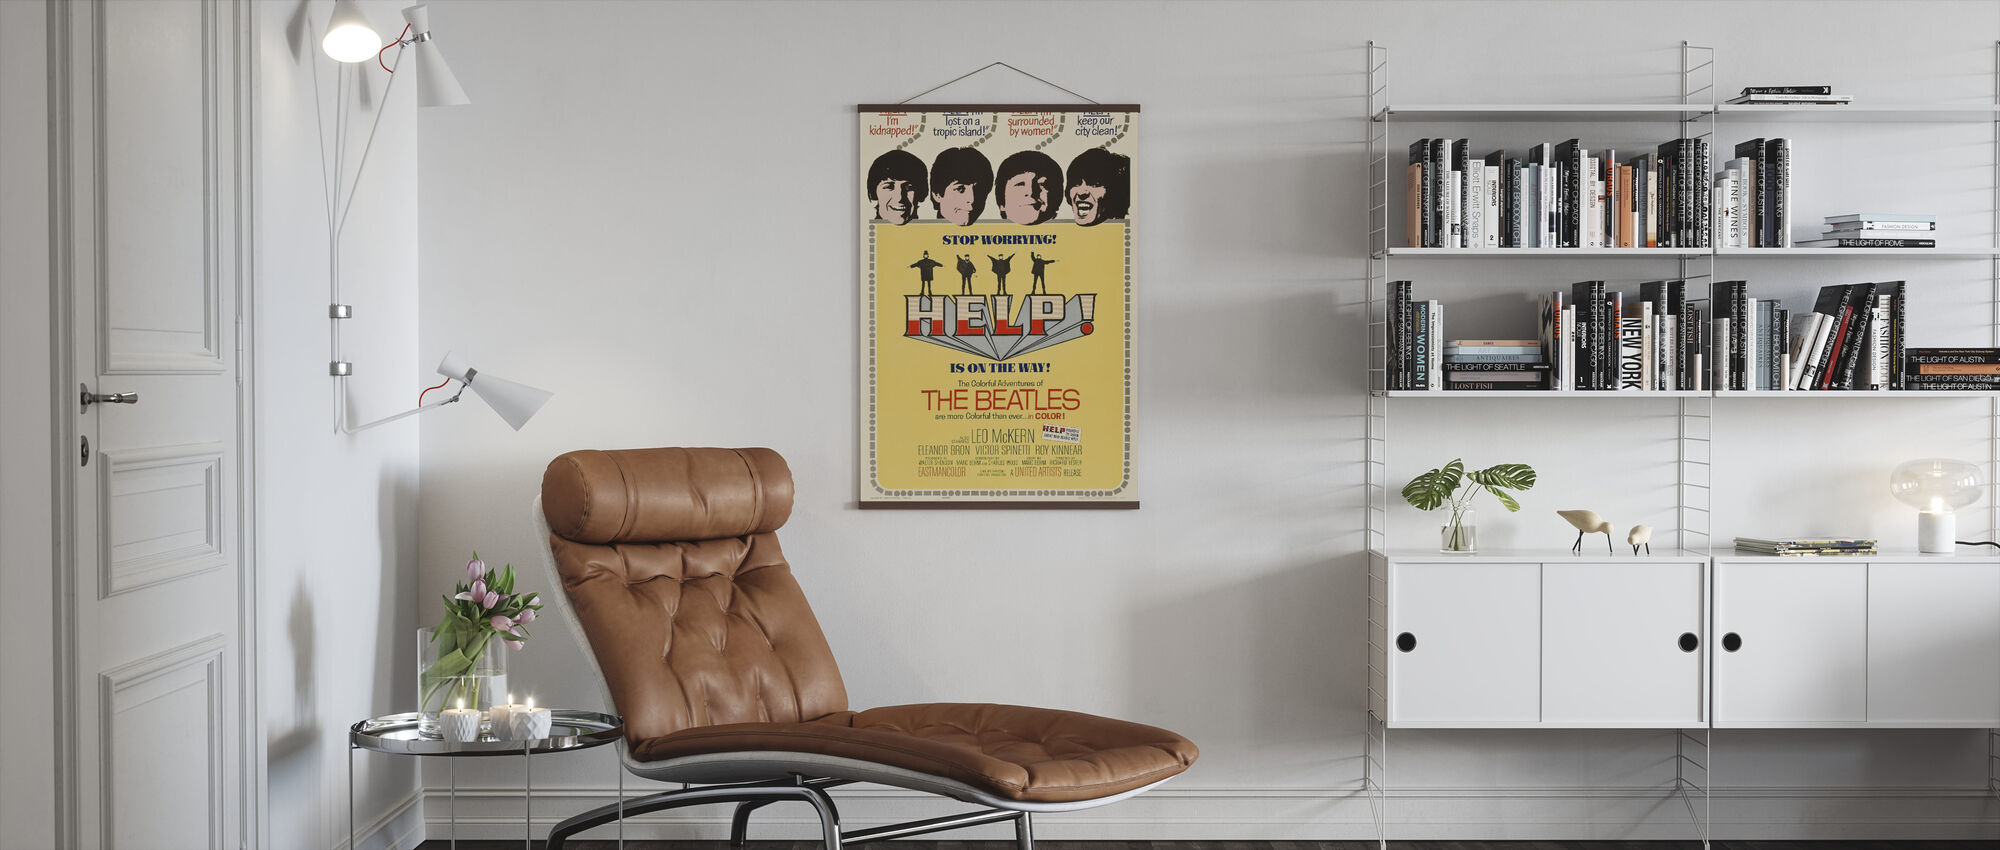 Help - Poster - Living Room